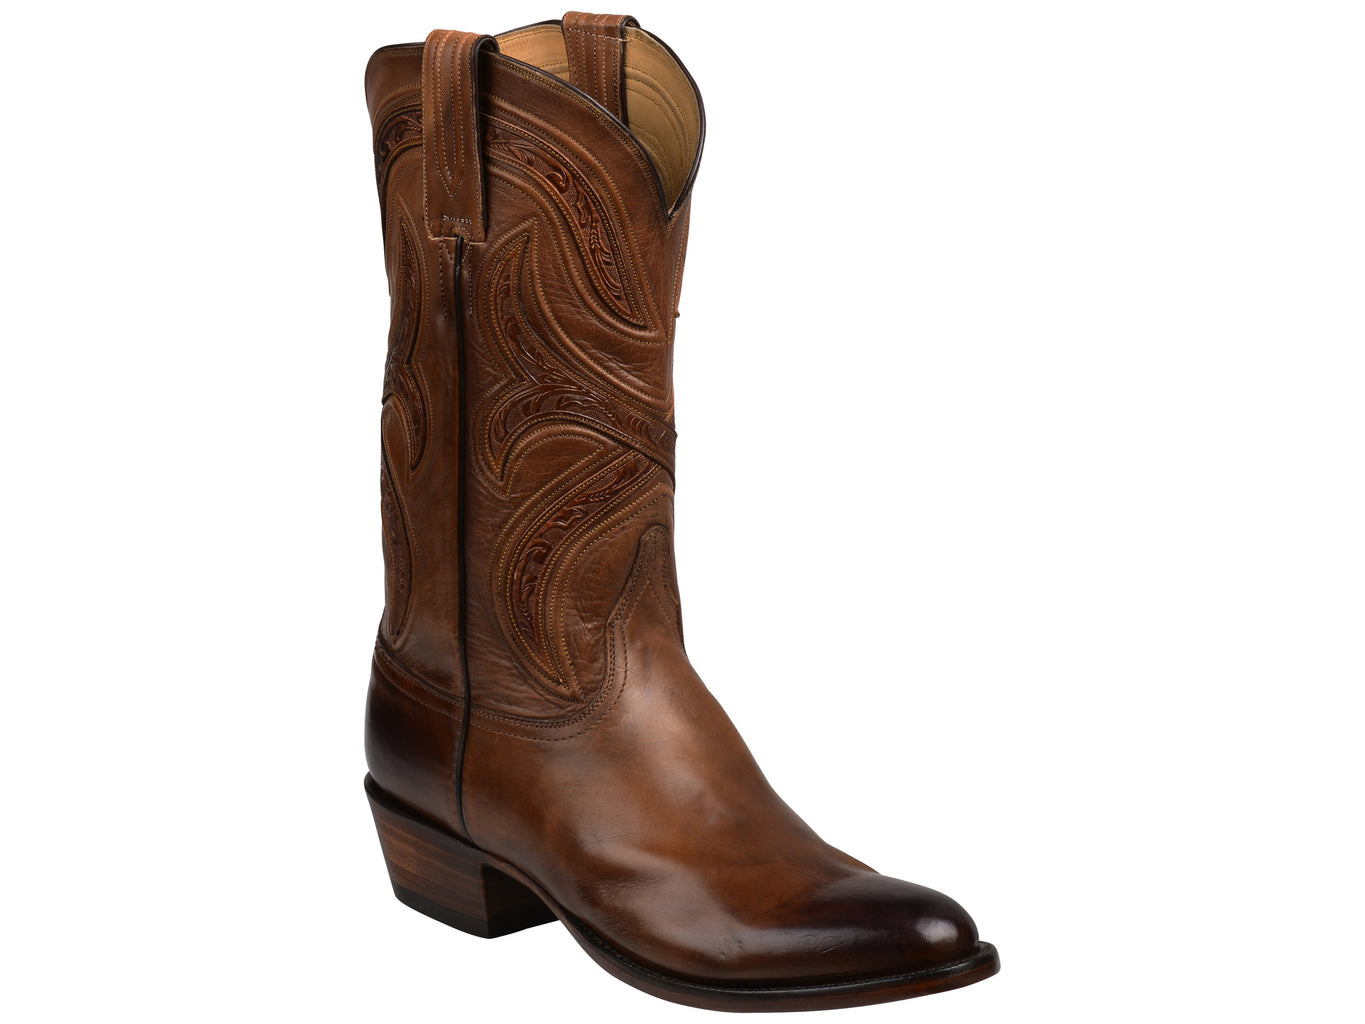 Men's Lucchese Bootmaker Knox Boots #GY1501-6/3 view 1